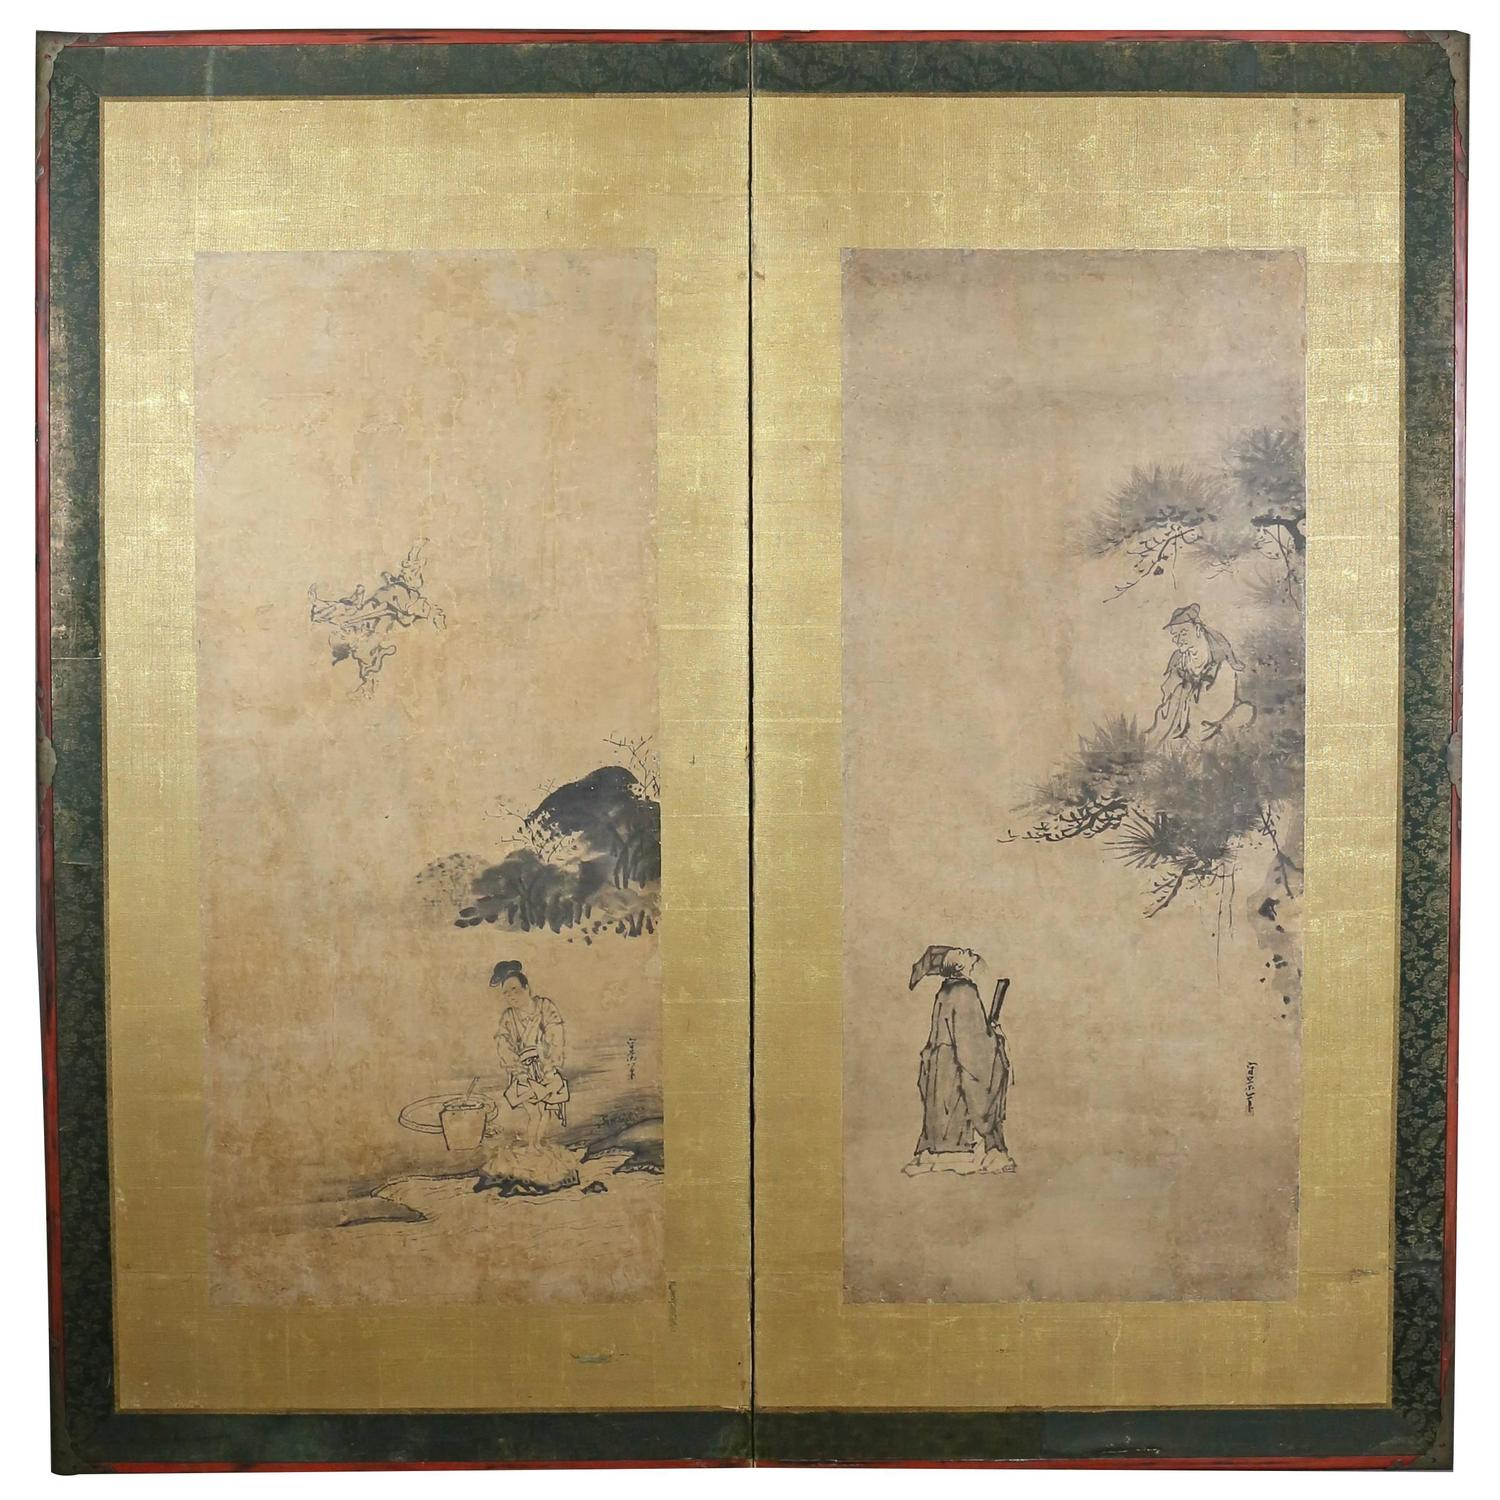 Antique japanese screens for sale - Framed Japanese Kano School Two Panel Screen Signed Kusumi Morikage